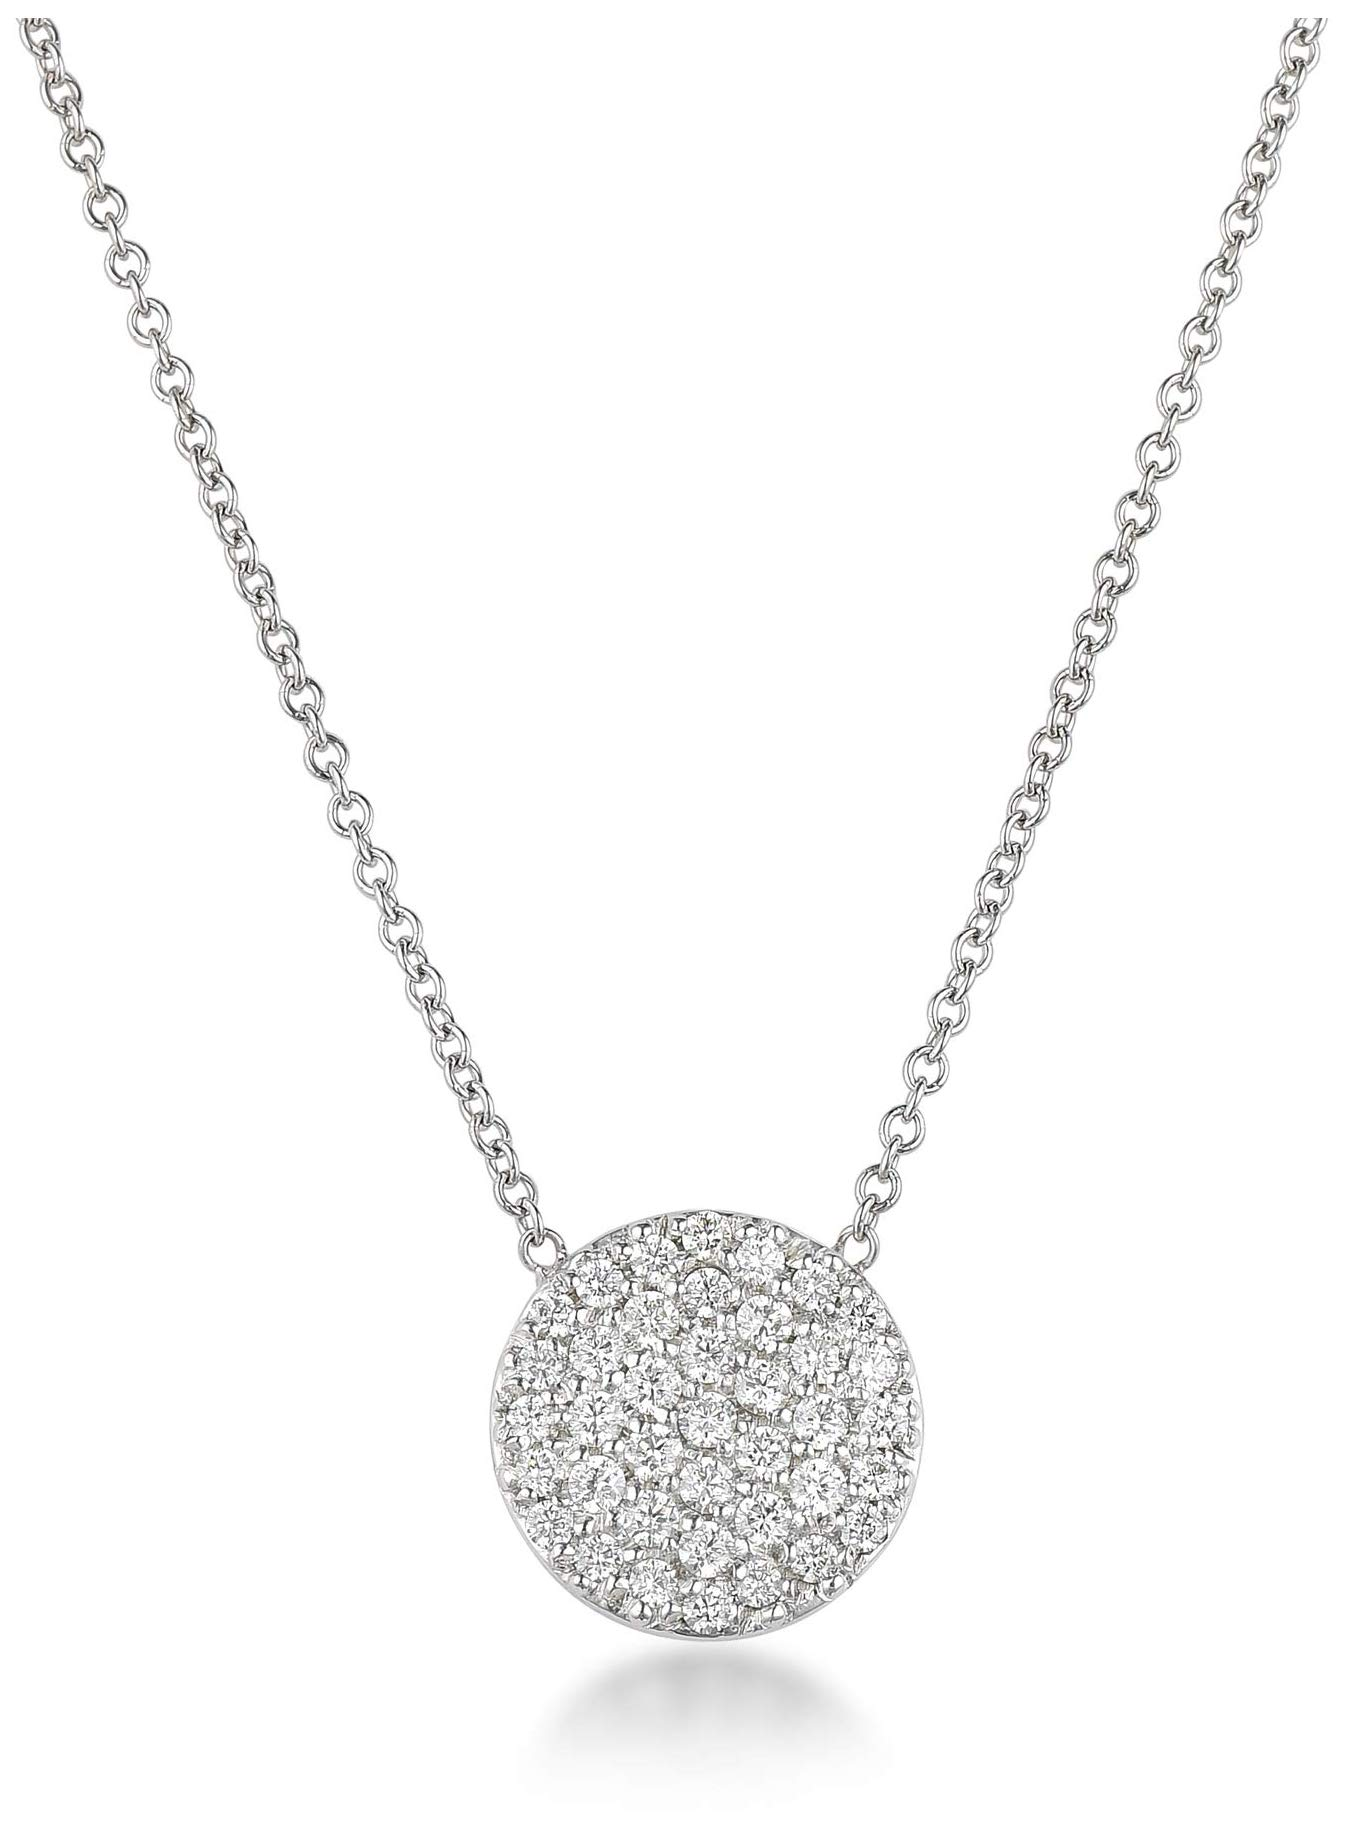 Harcourt Jewels Women's 14K White Gold 16'' Long Micropave Diamond Disc Pendant (.38 Cttw, Vs Clarity), One Size by Harrcourt Jewels